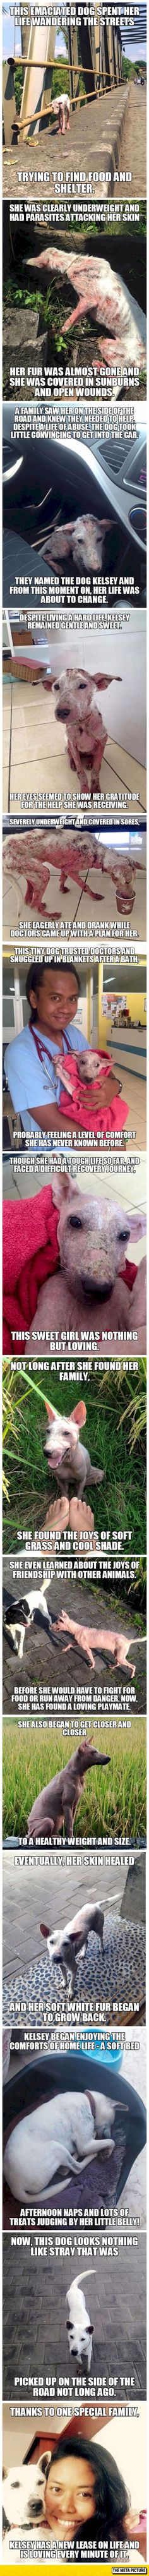 Stories like these give me hope for the millions of animals out there living in horrific conditions like this